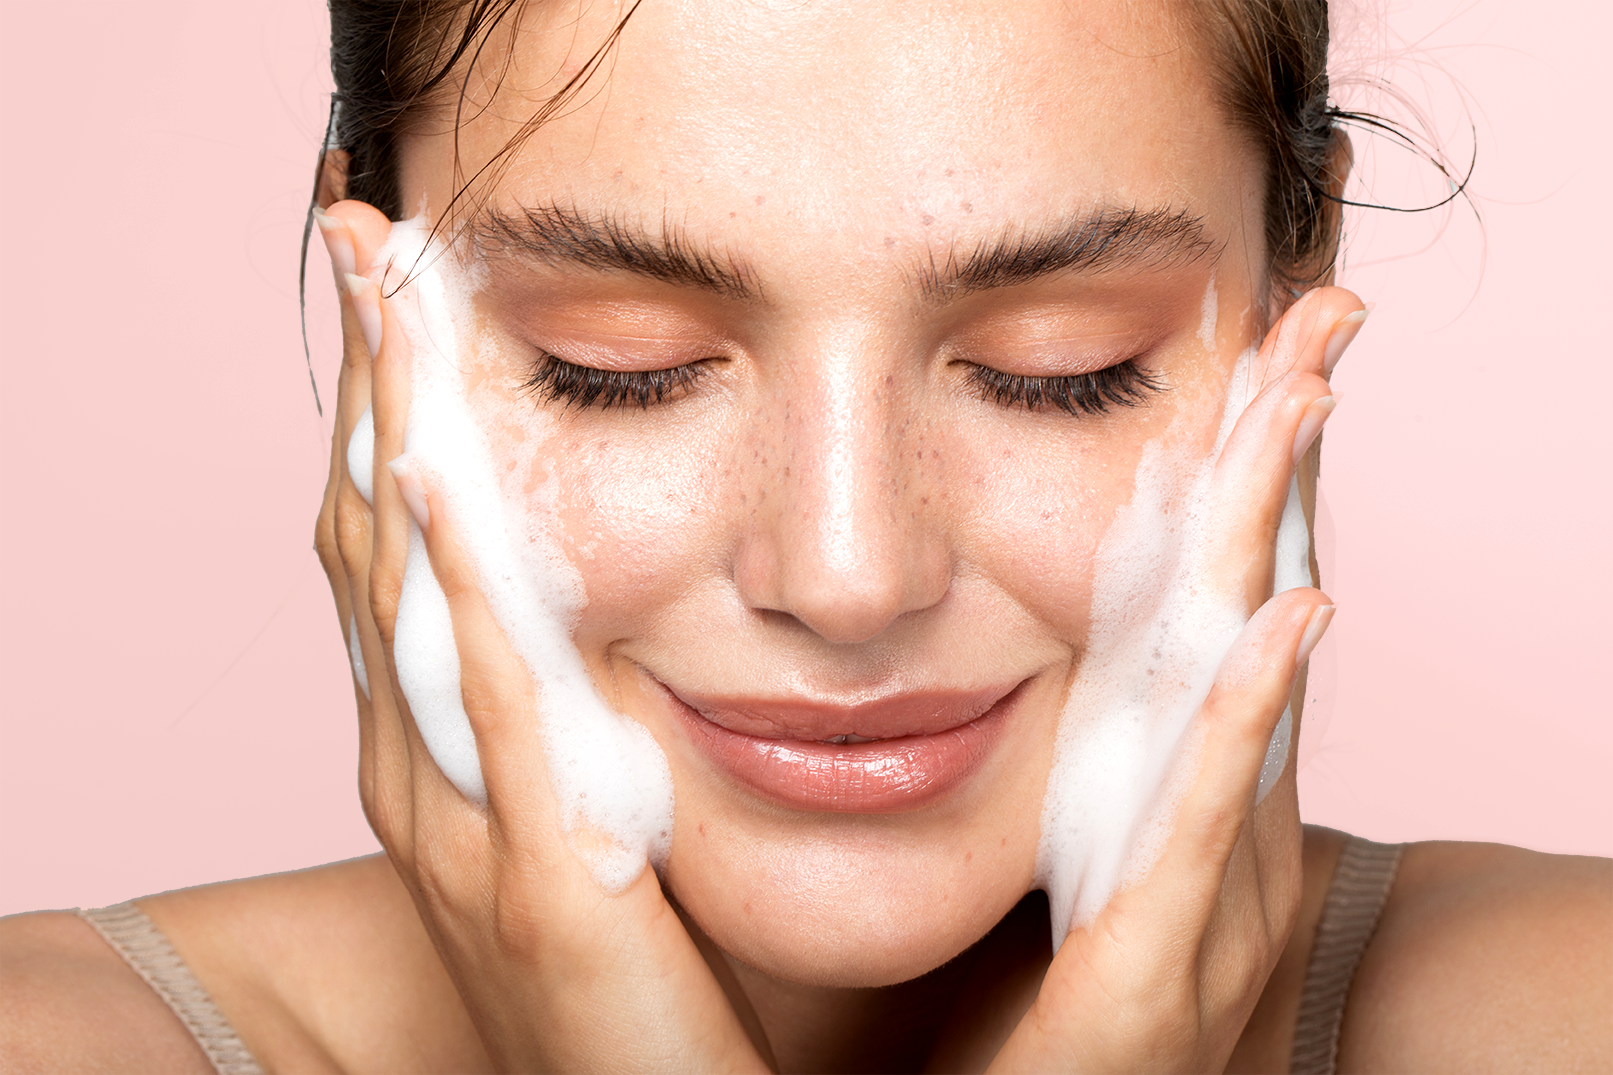 Getting serious about skin care so you don't have to